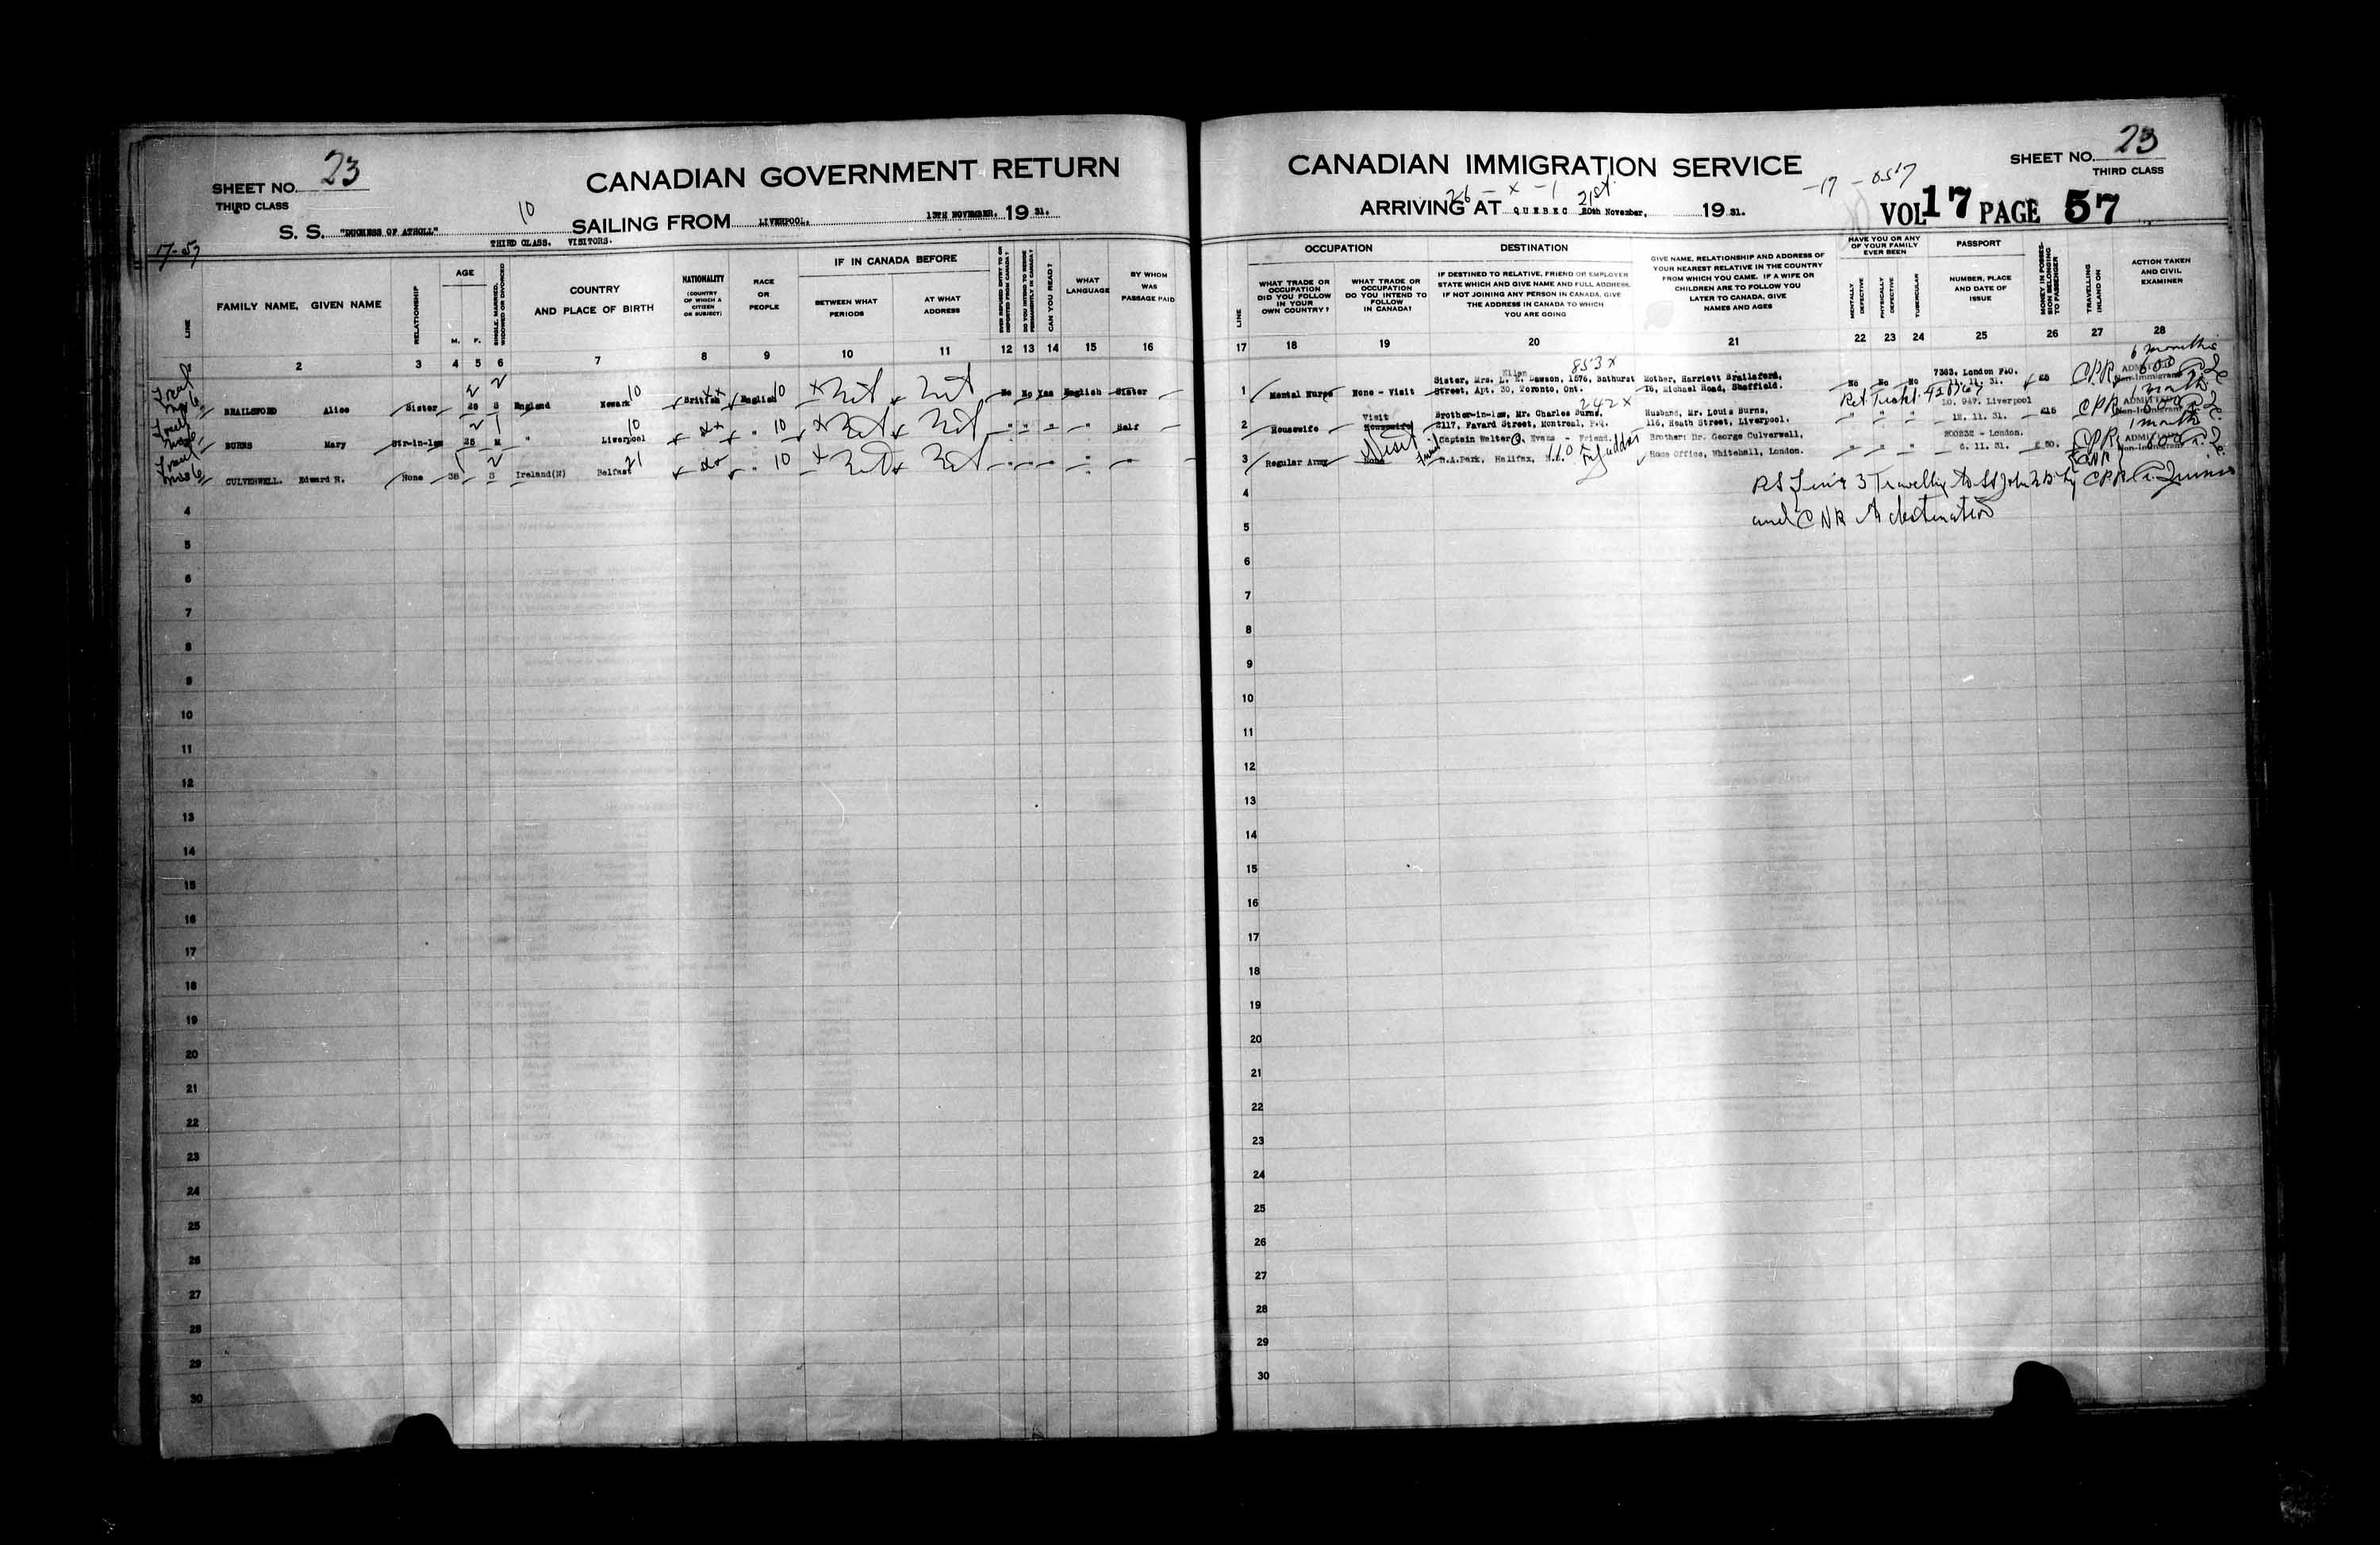 Title: Passenger Lists: Quebec City (1925-1935) - Mikan Number: 134839 - Microform: t-14777